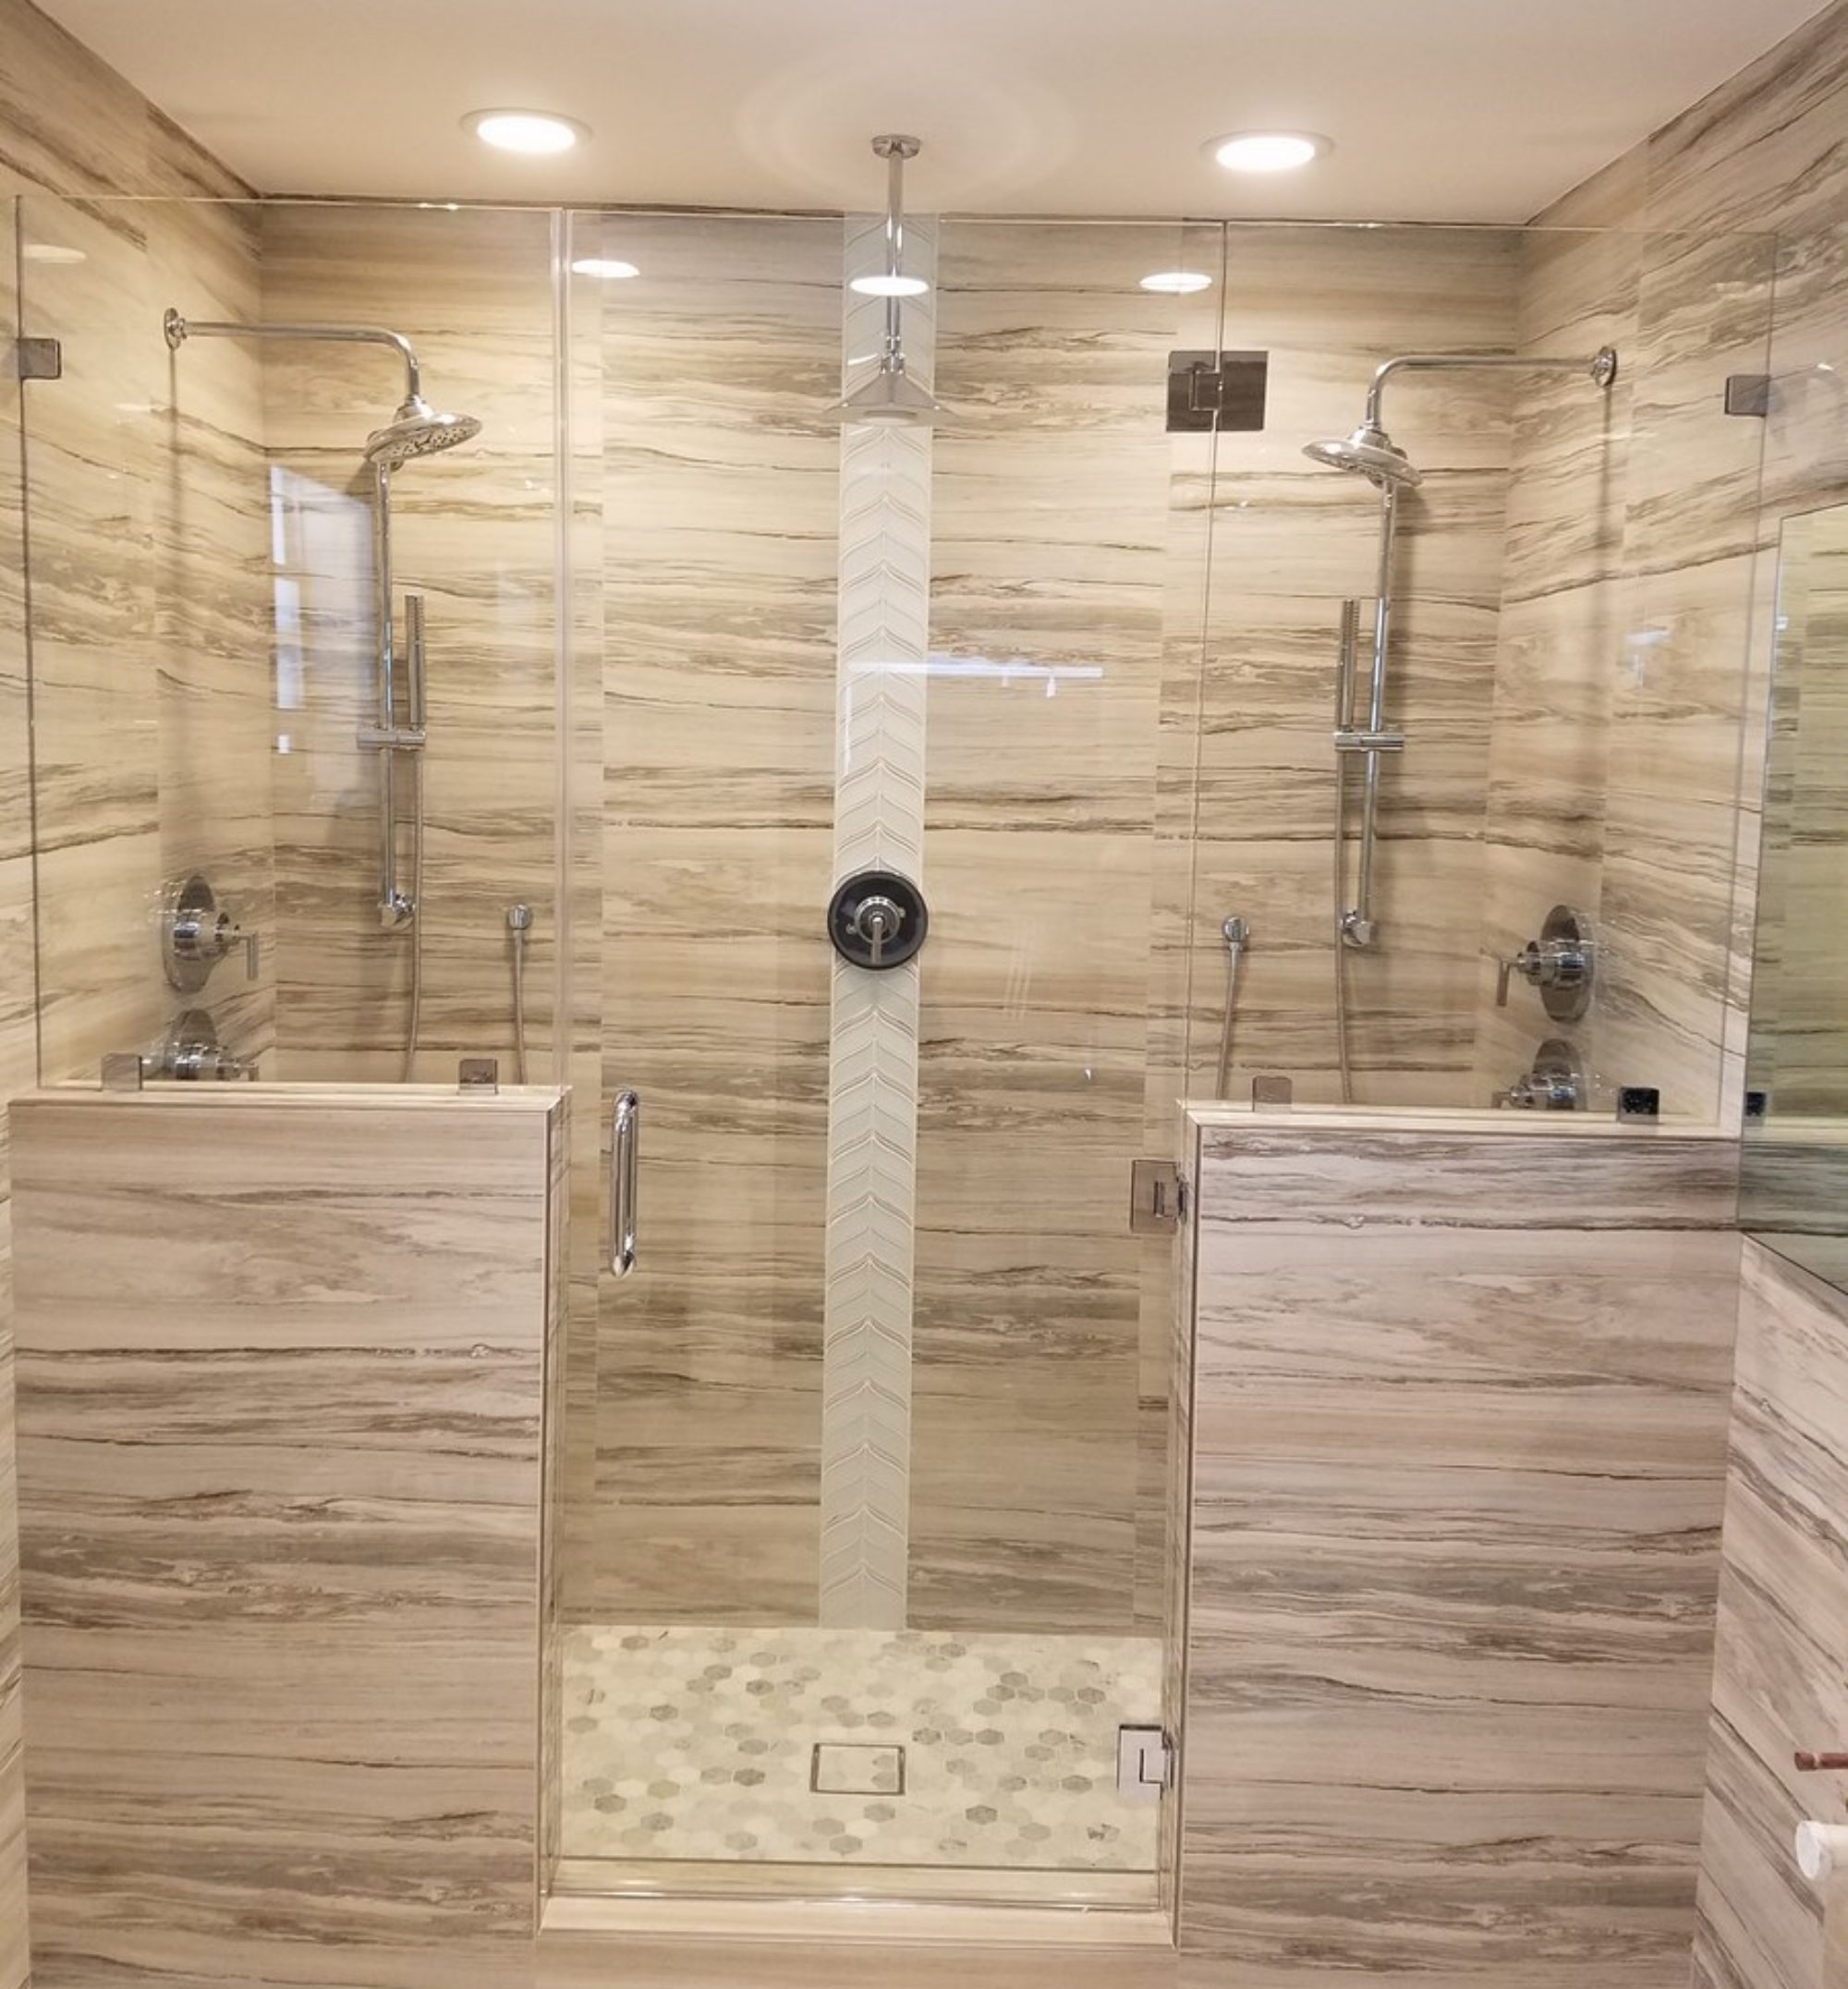 Home Elso Shower Doors And Tub Corp